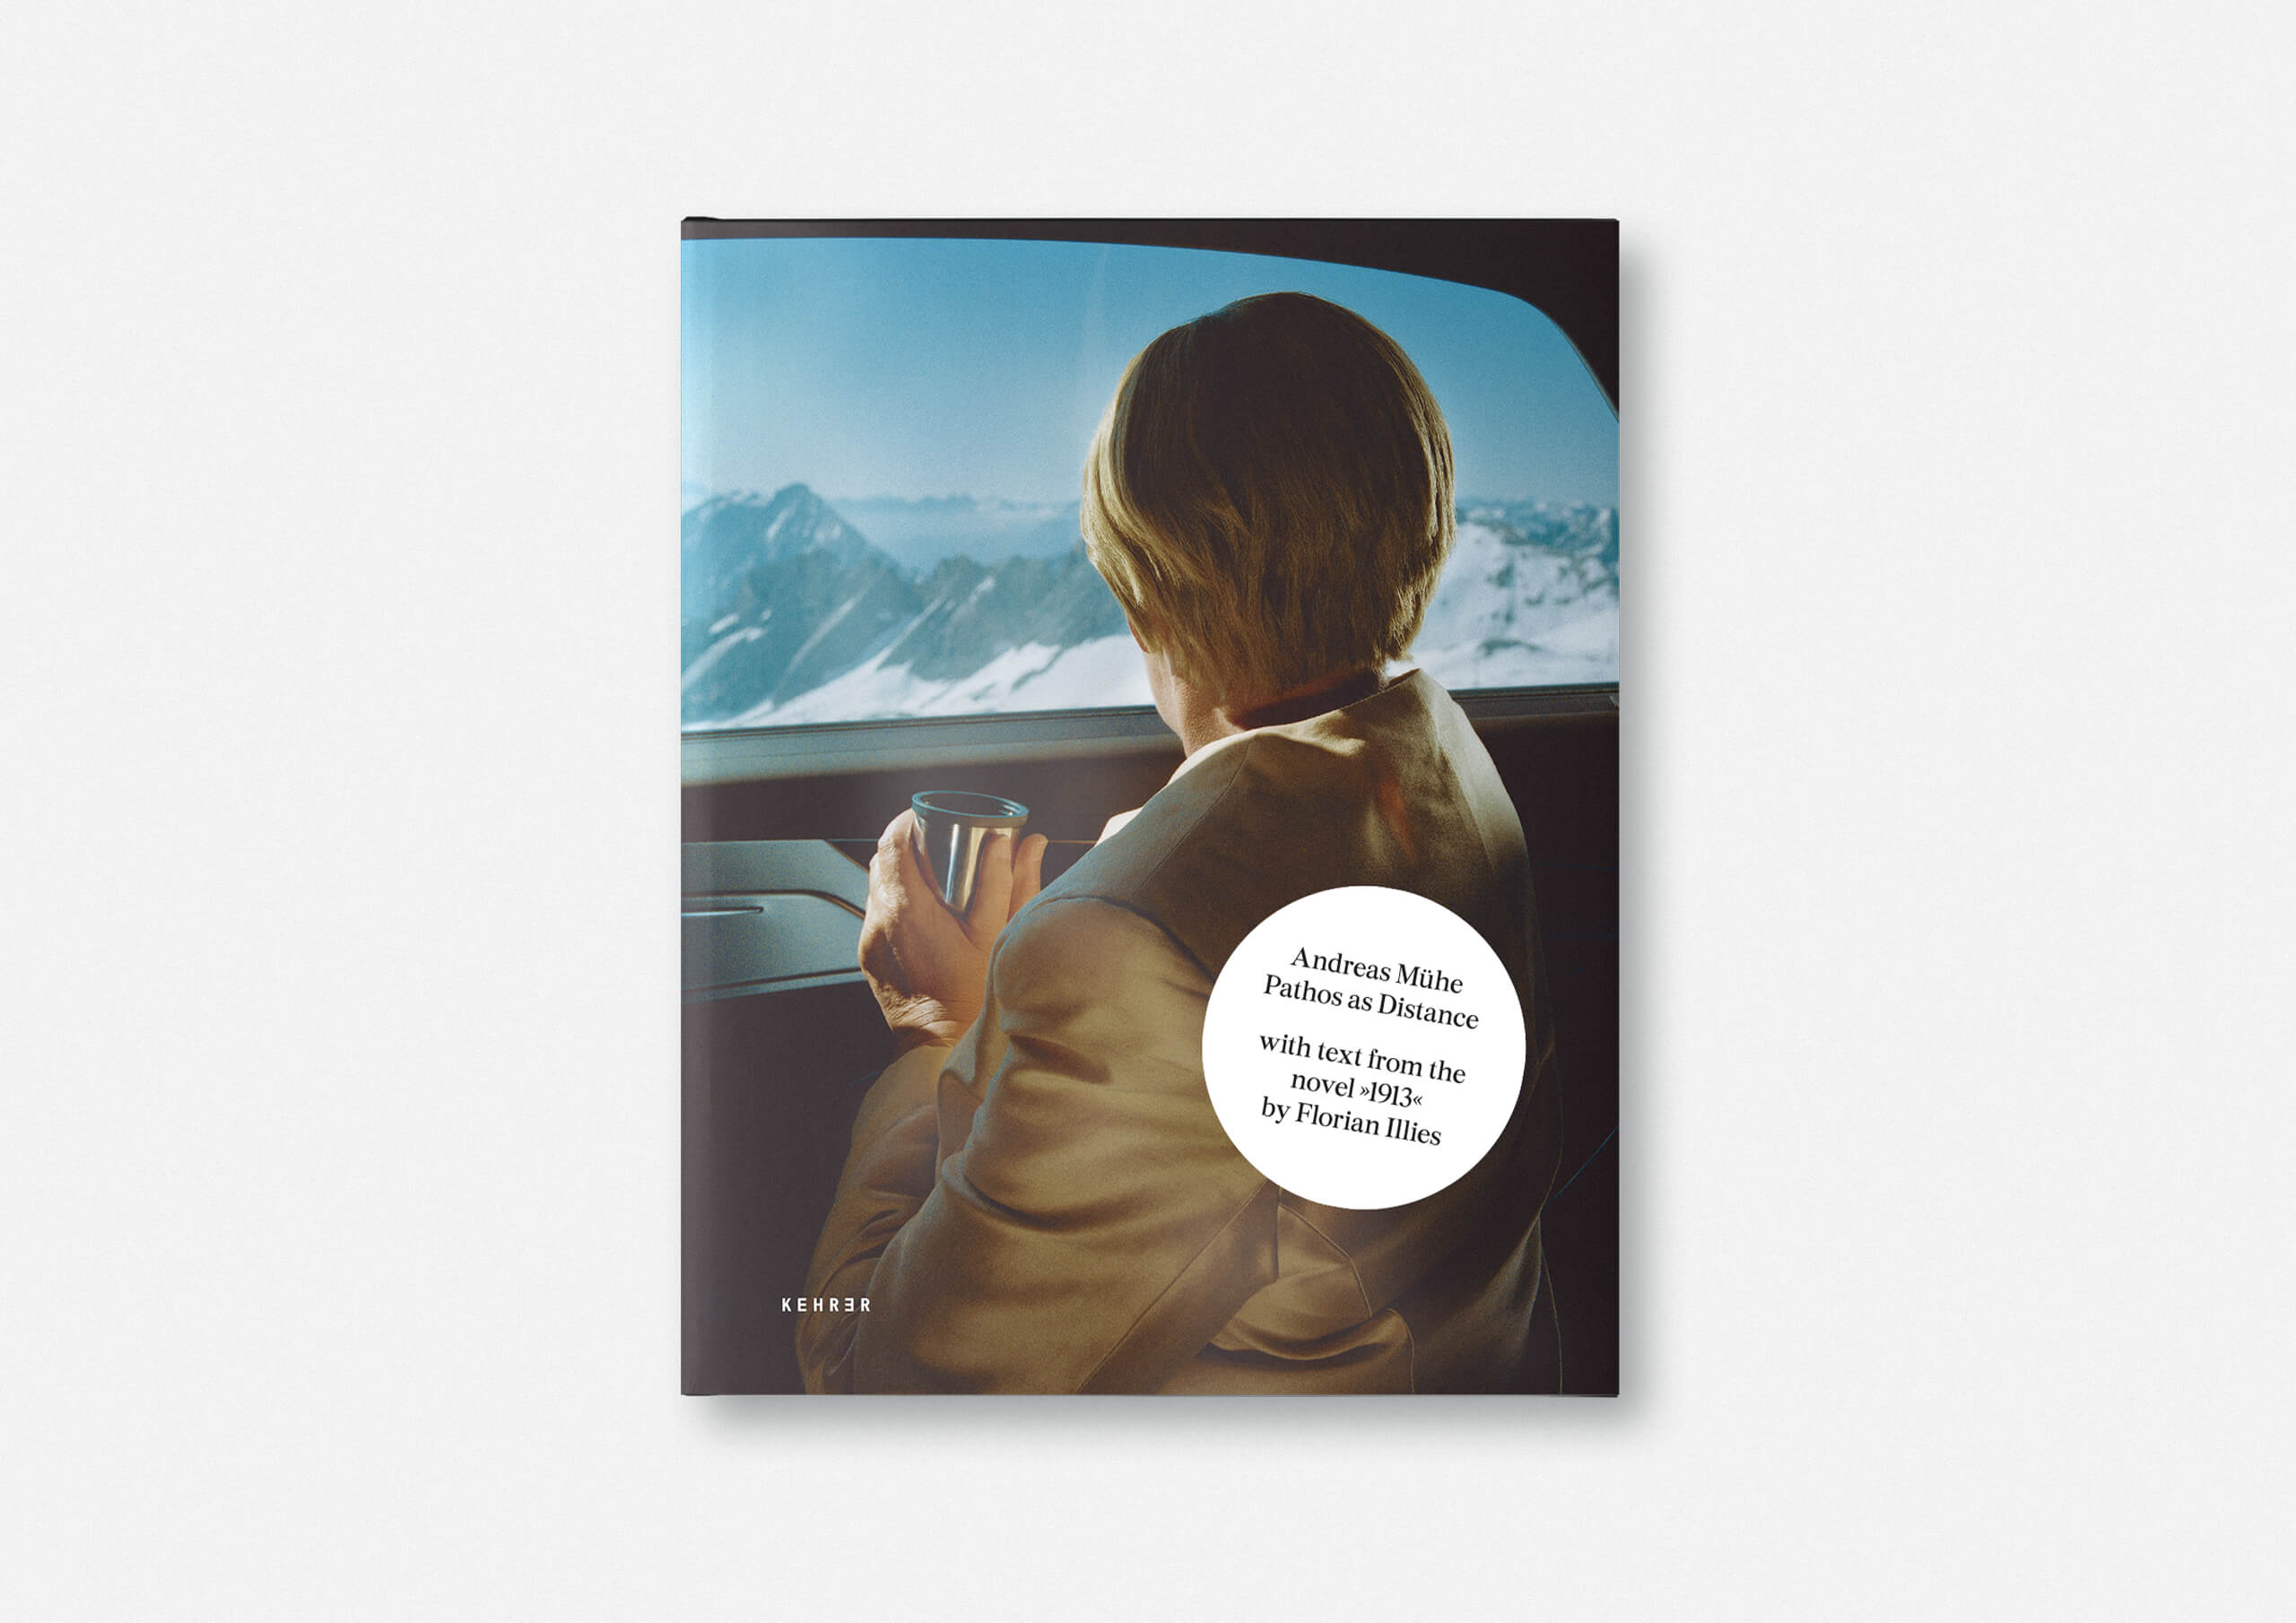 http://www.neuegestaltung.de/media/pages/clients/andreas-muhe-pathos-als-distanz/6c9cc97b9e-1597415202/am_dth_ng-web_cover_front_umschlag.jpg